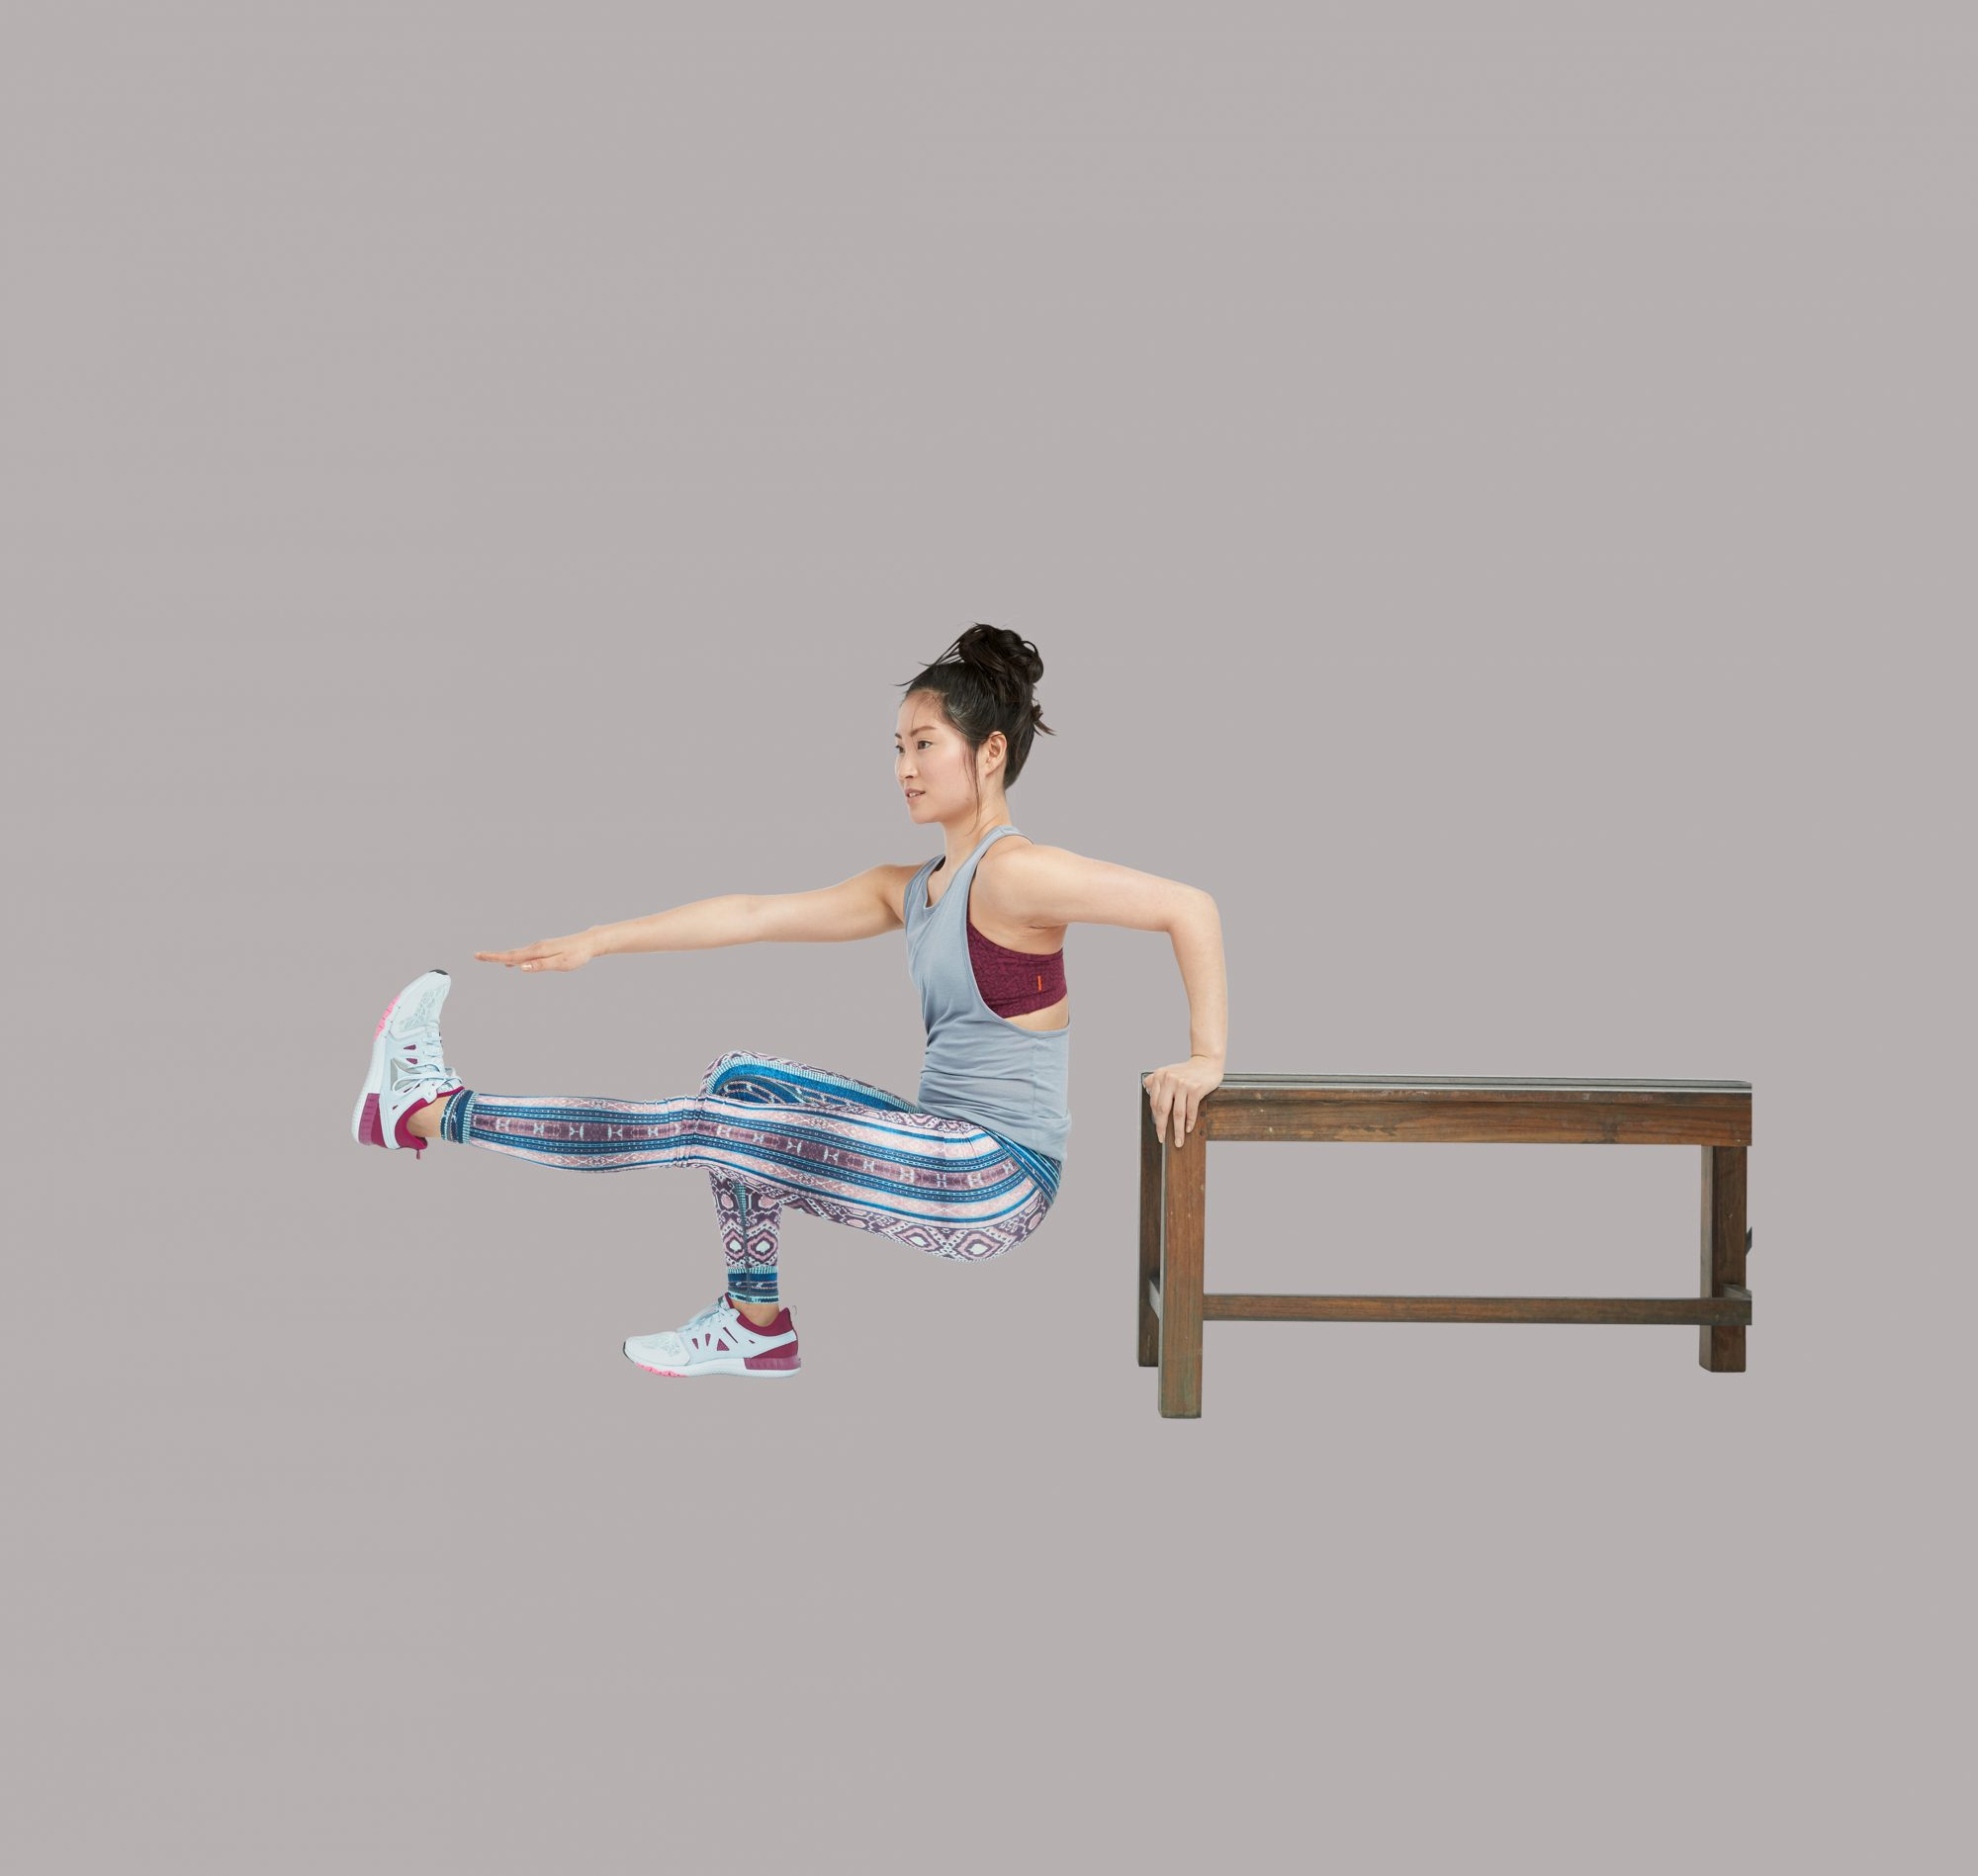 5 Exercises You Can Do on a Bench